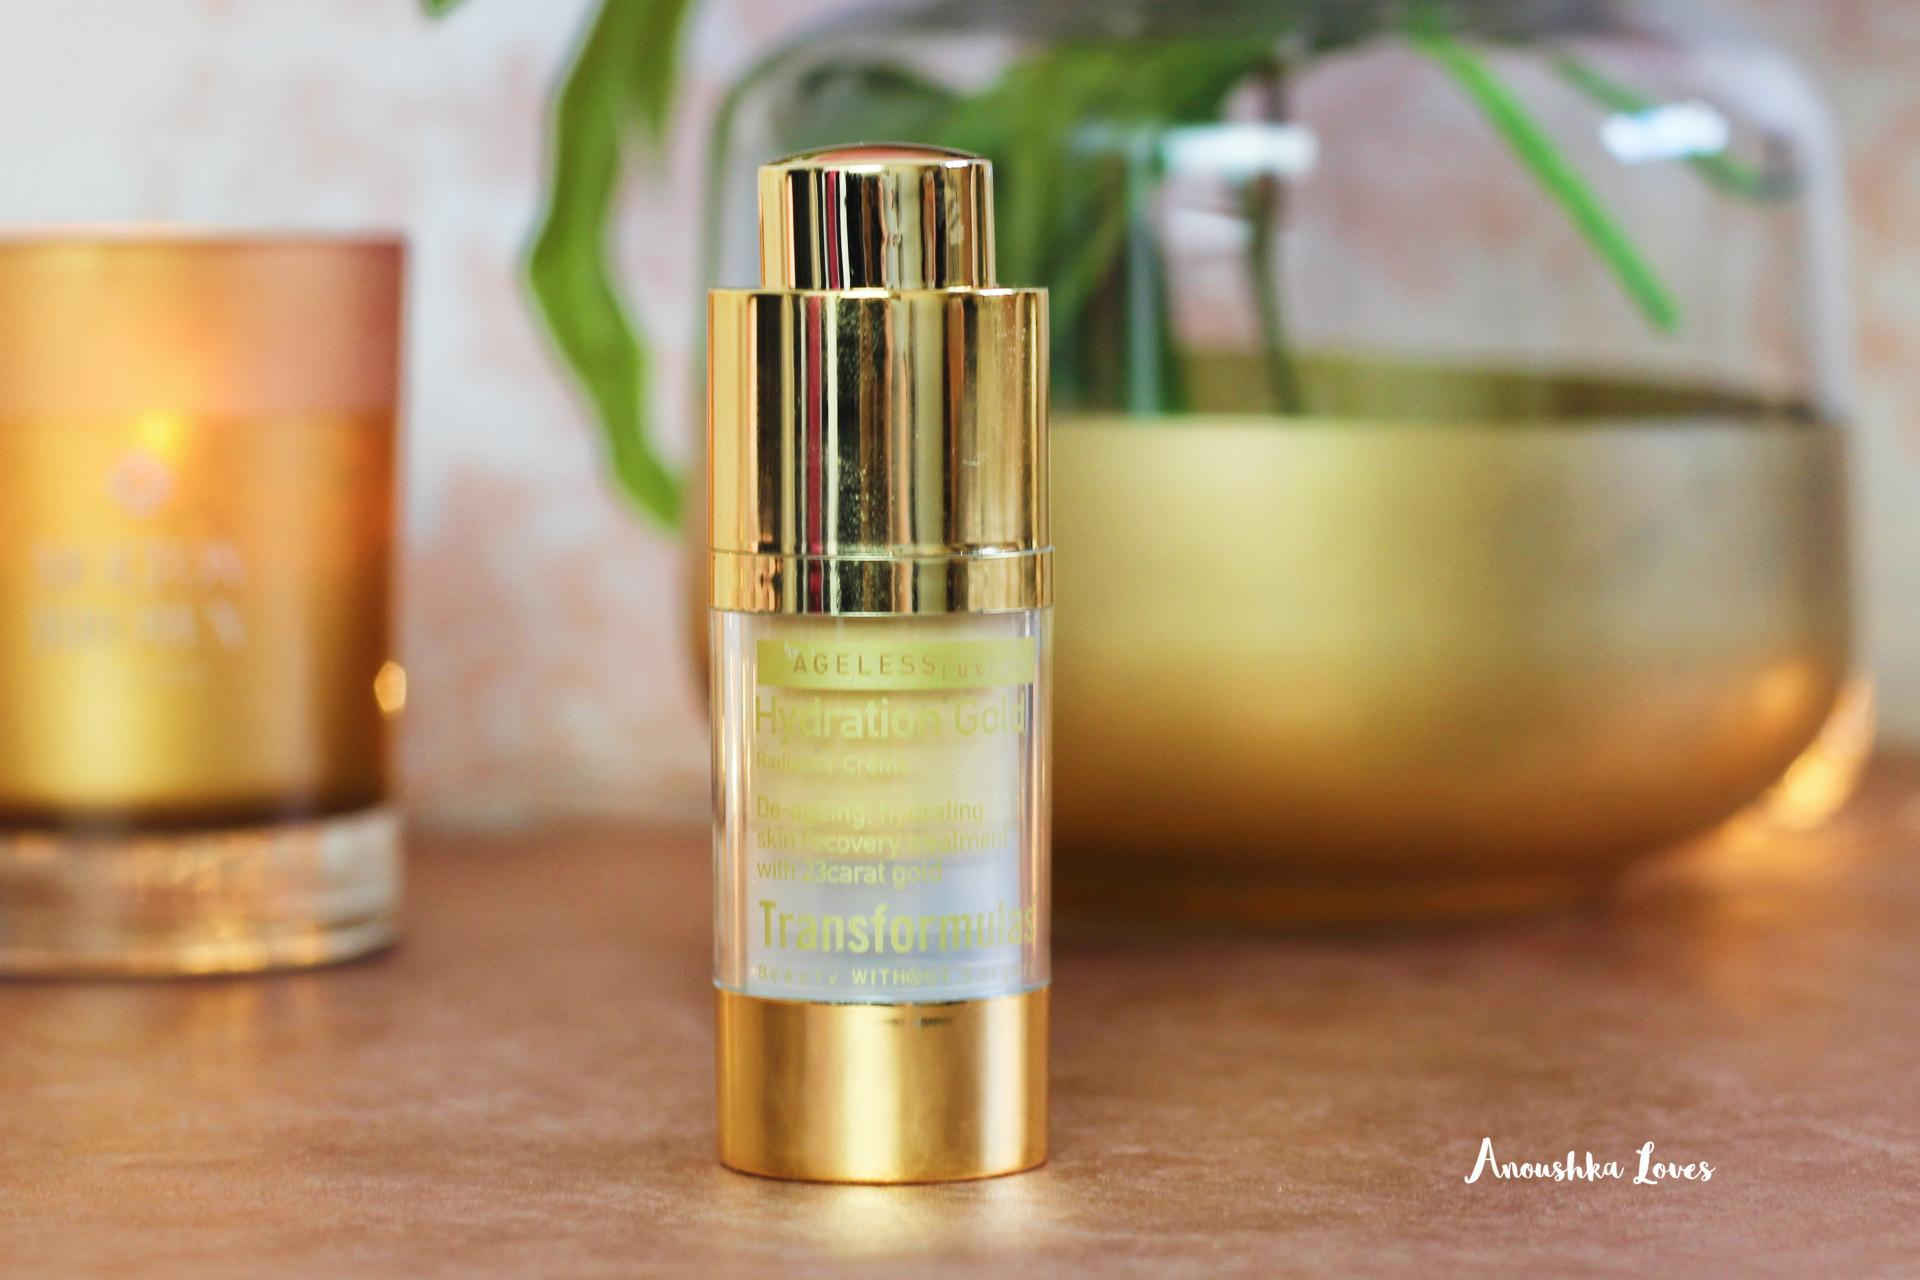 On the Bathroom Shelf - Summer Skincare Transformulas Hydration Gold